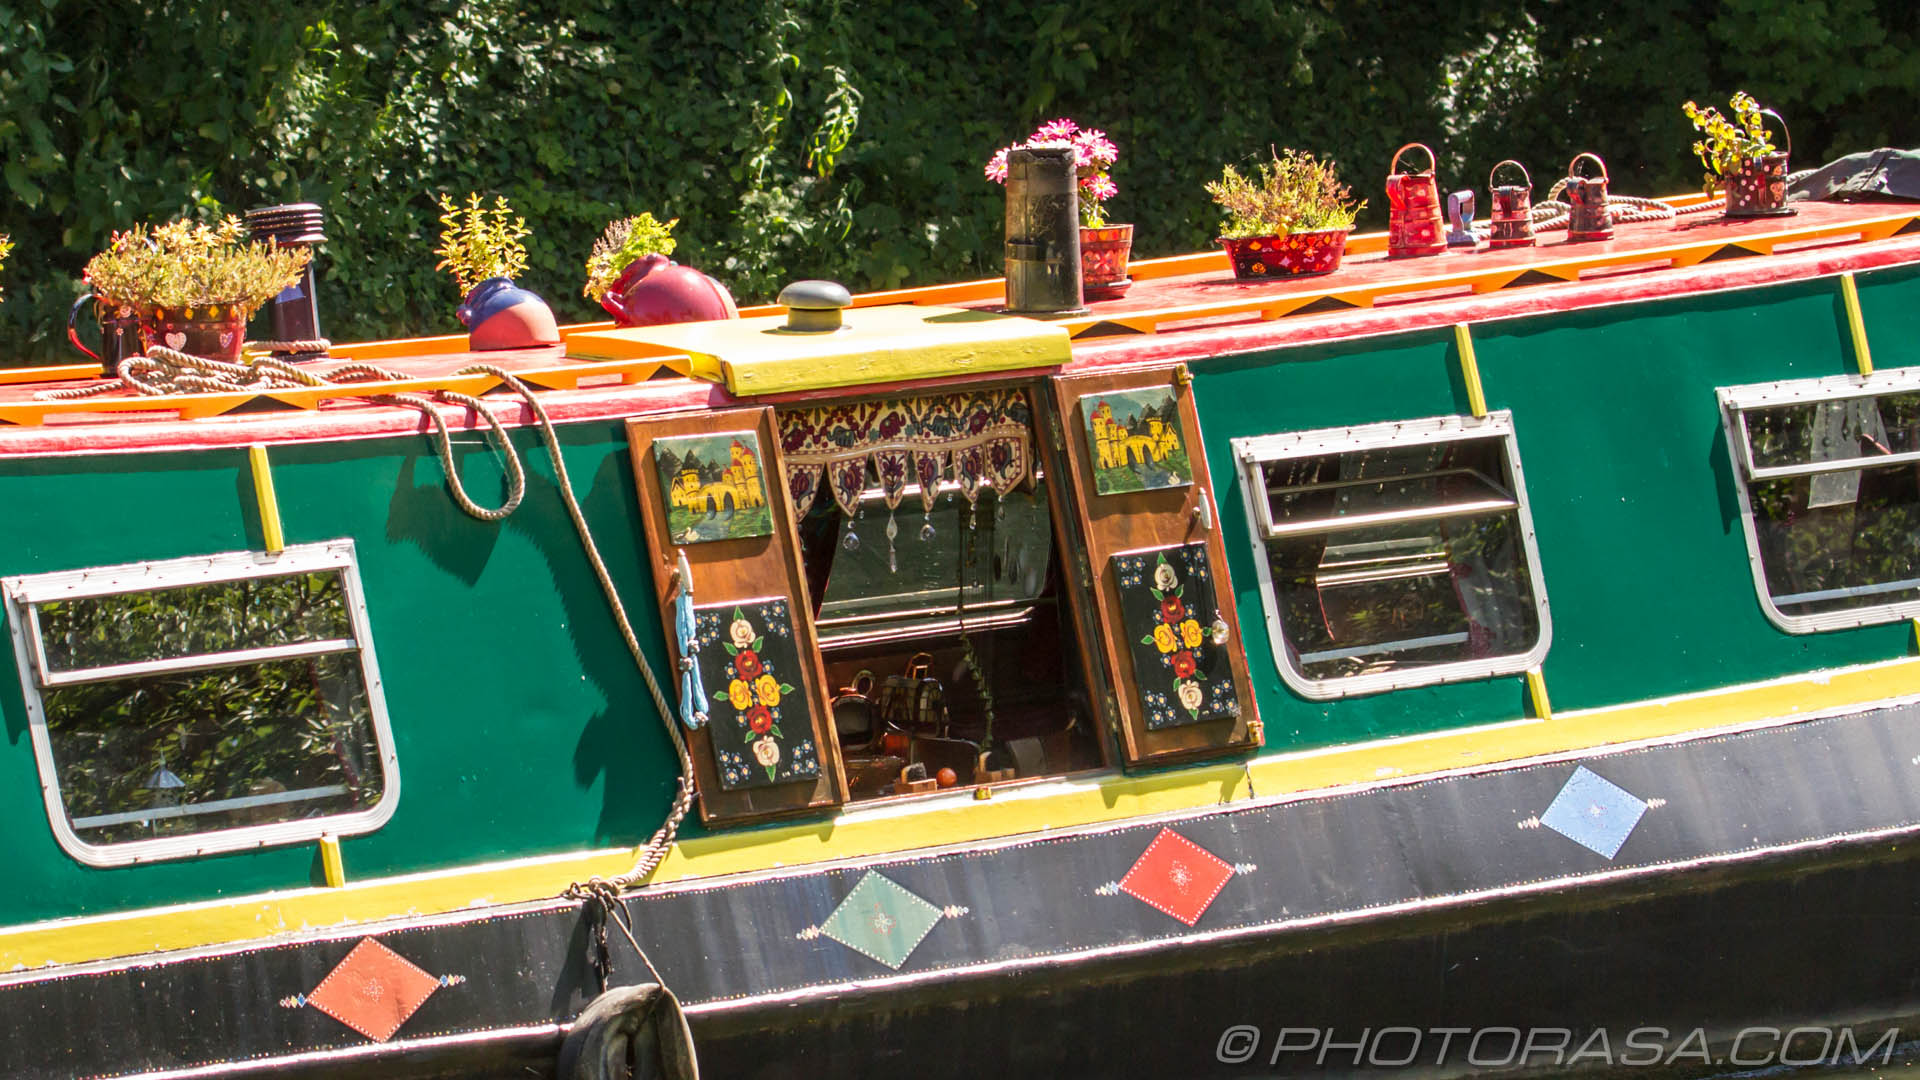 http://photorasa.com/maidstone/colourful-river-barge/